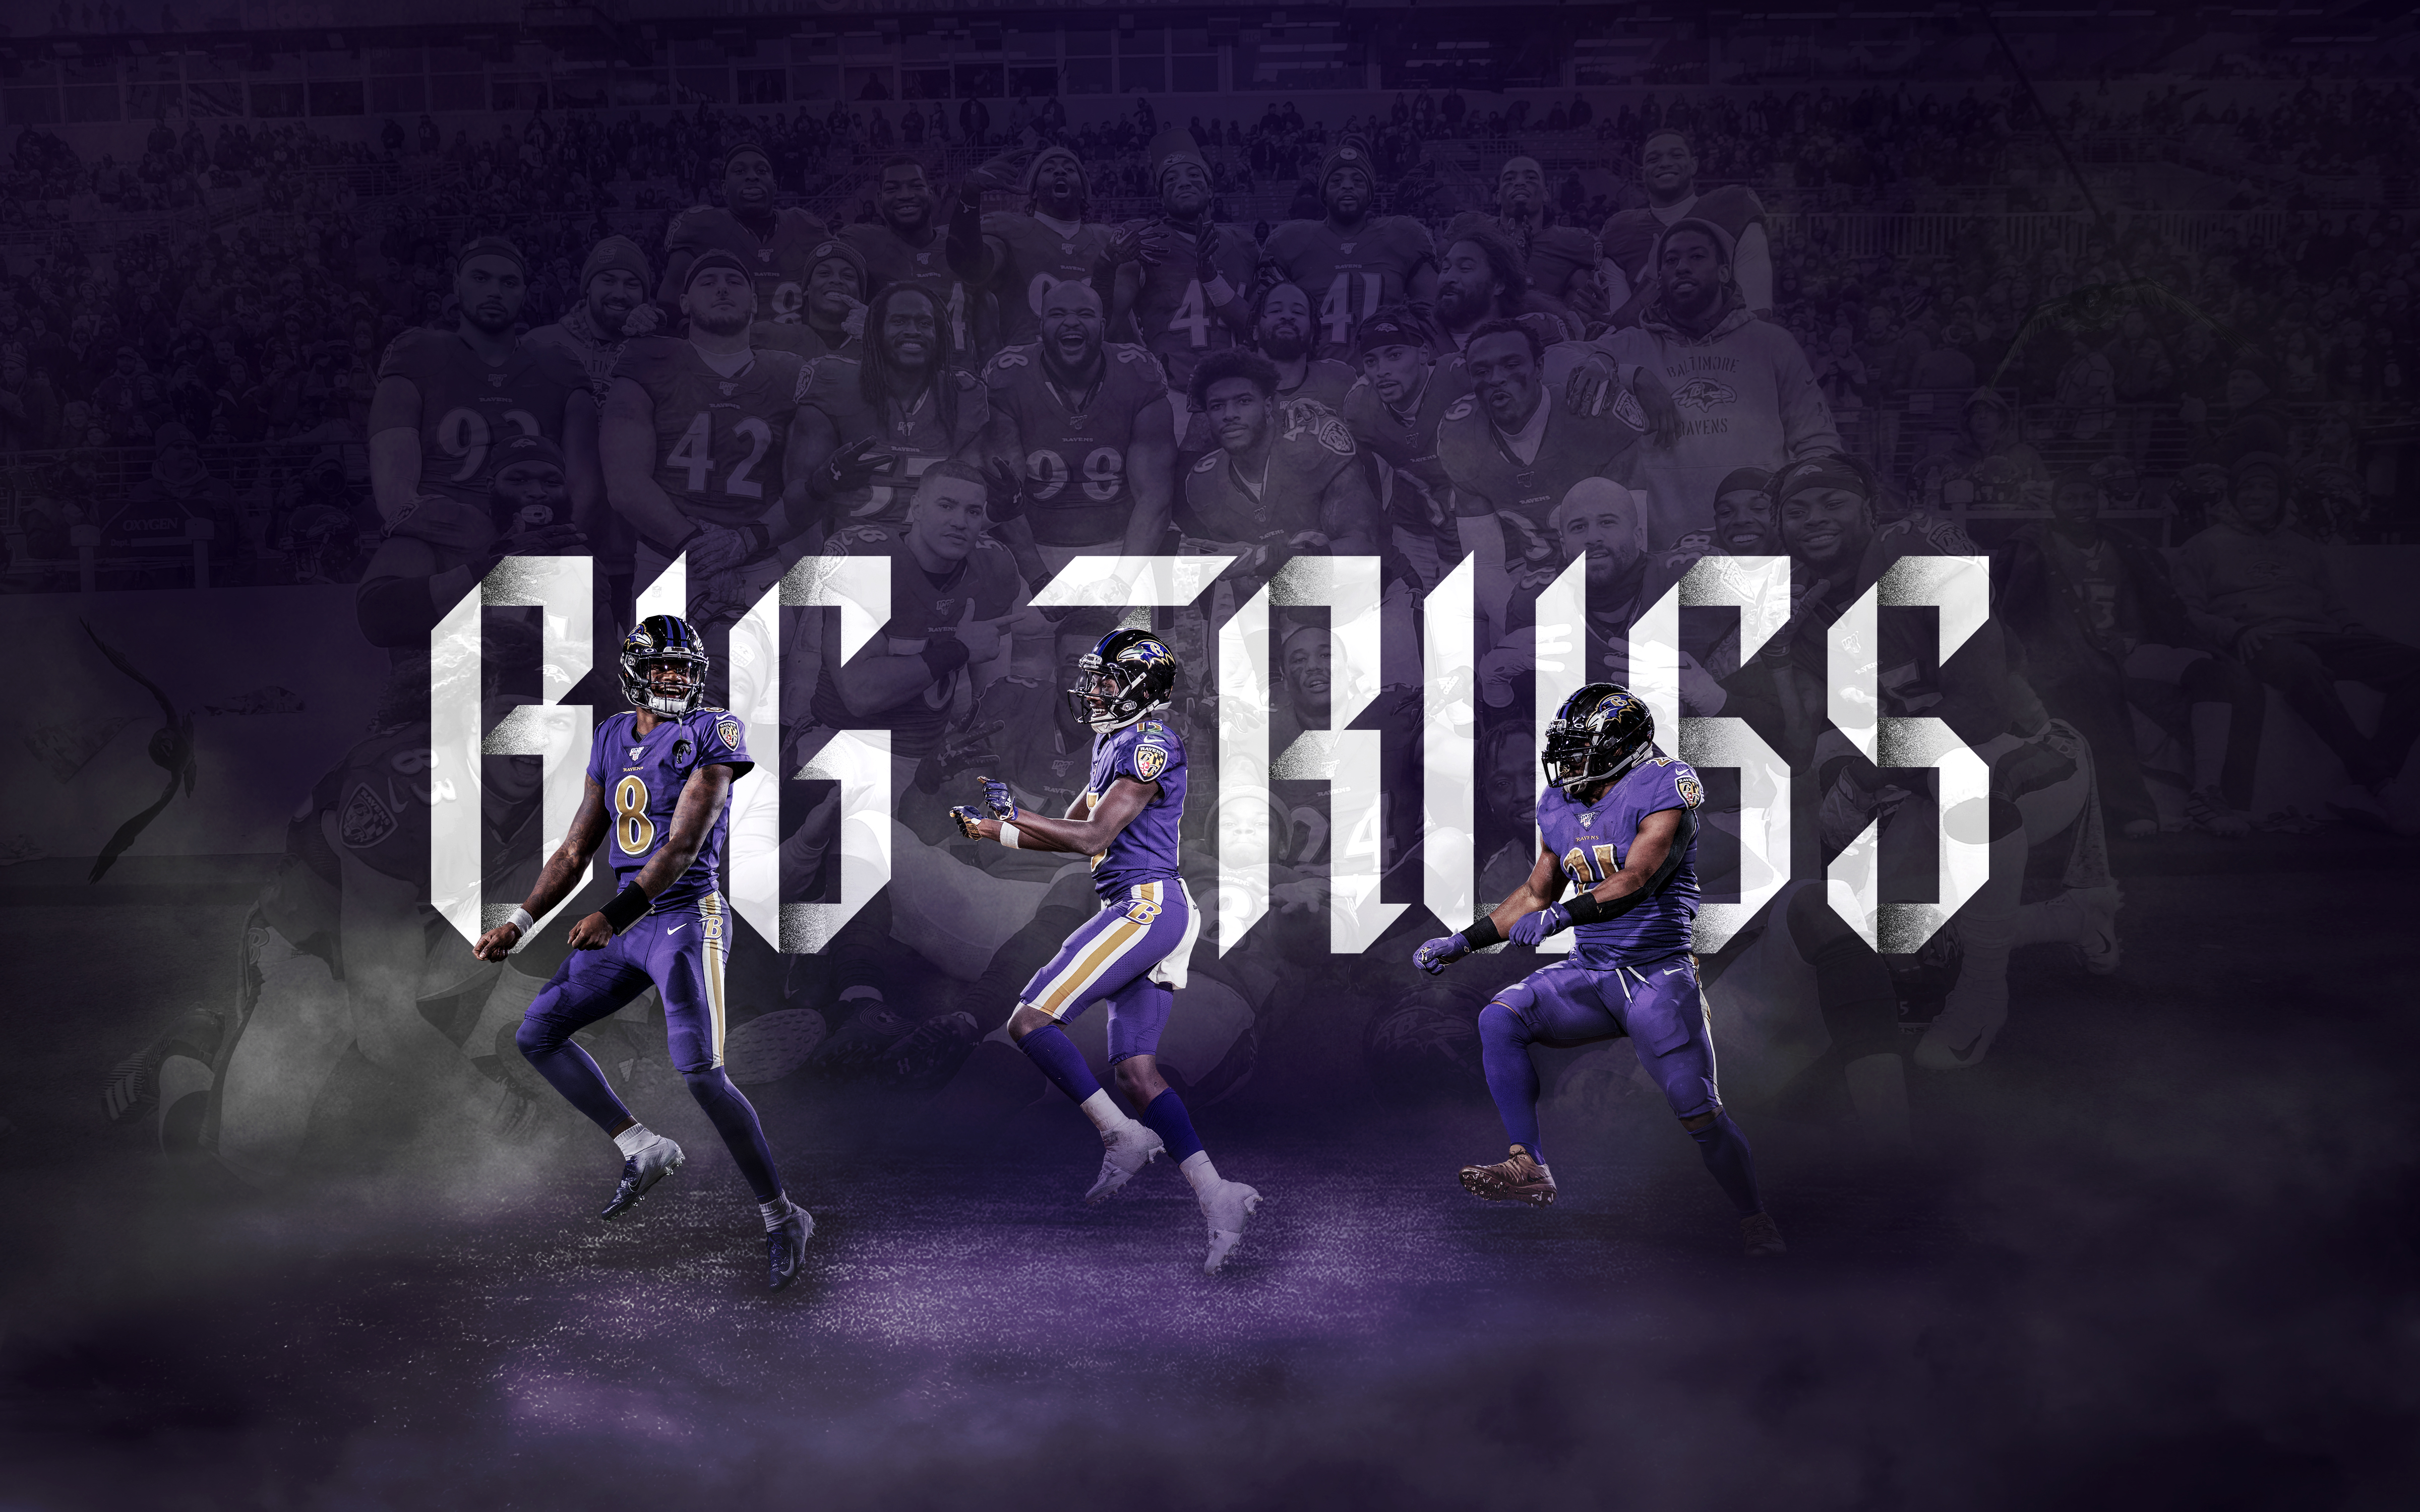 Bigtruss W14 Desktop Baltimore Ravens Wallpaper 2020 4800x3000 Download Hd Wallpaper Wallpapertip